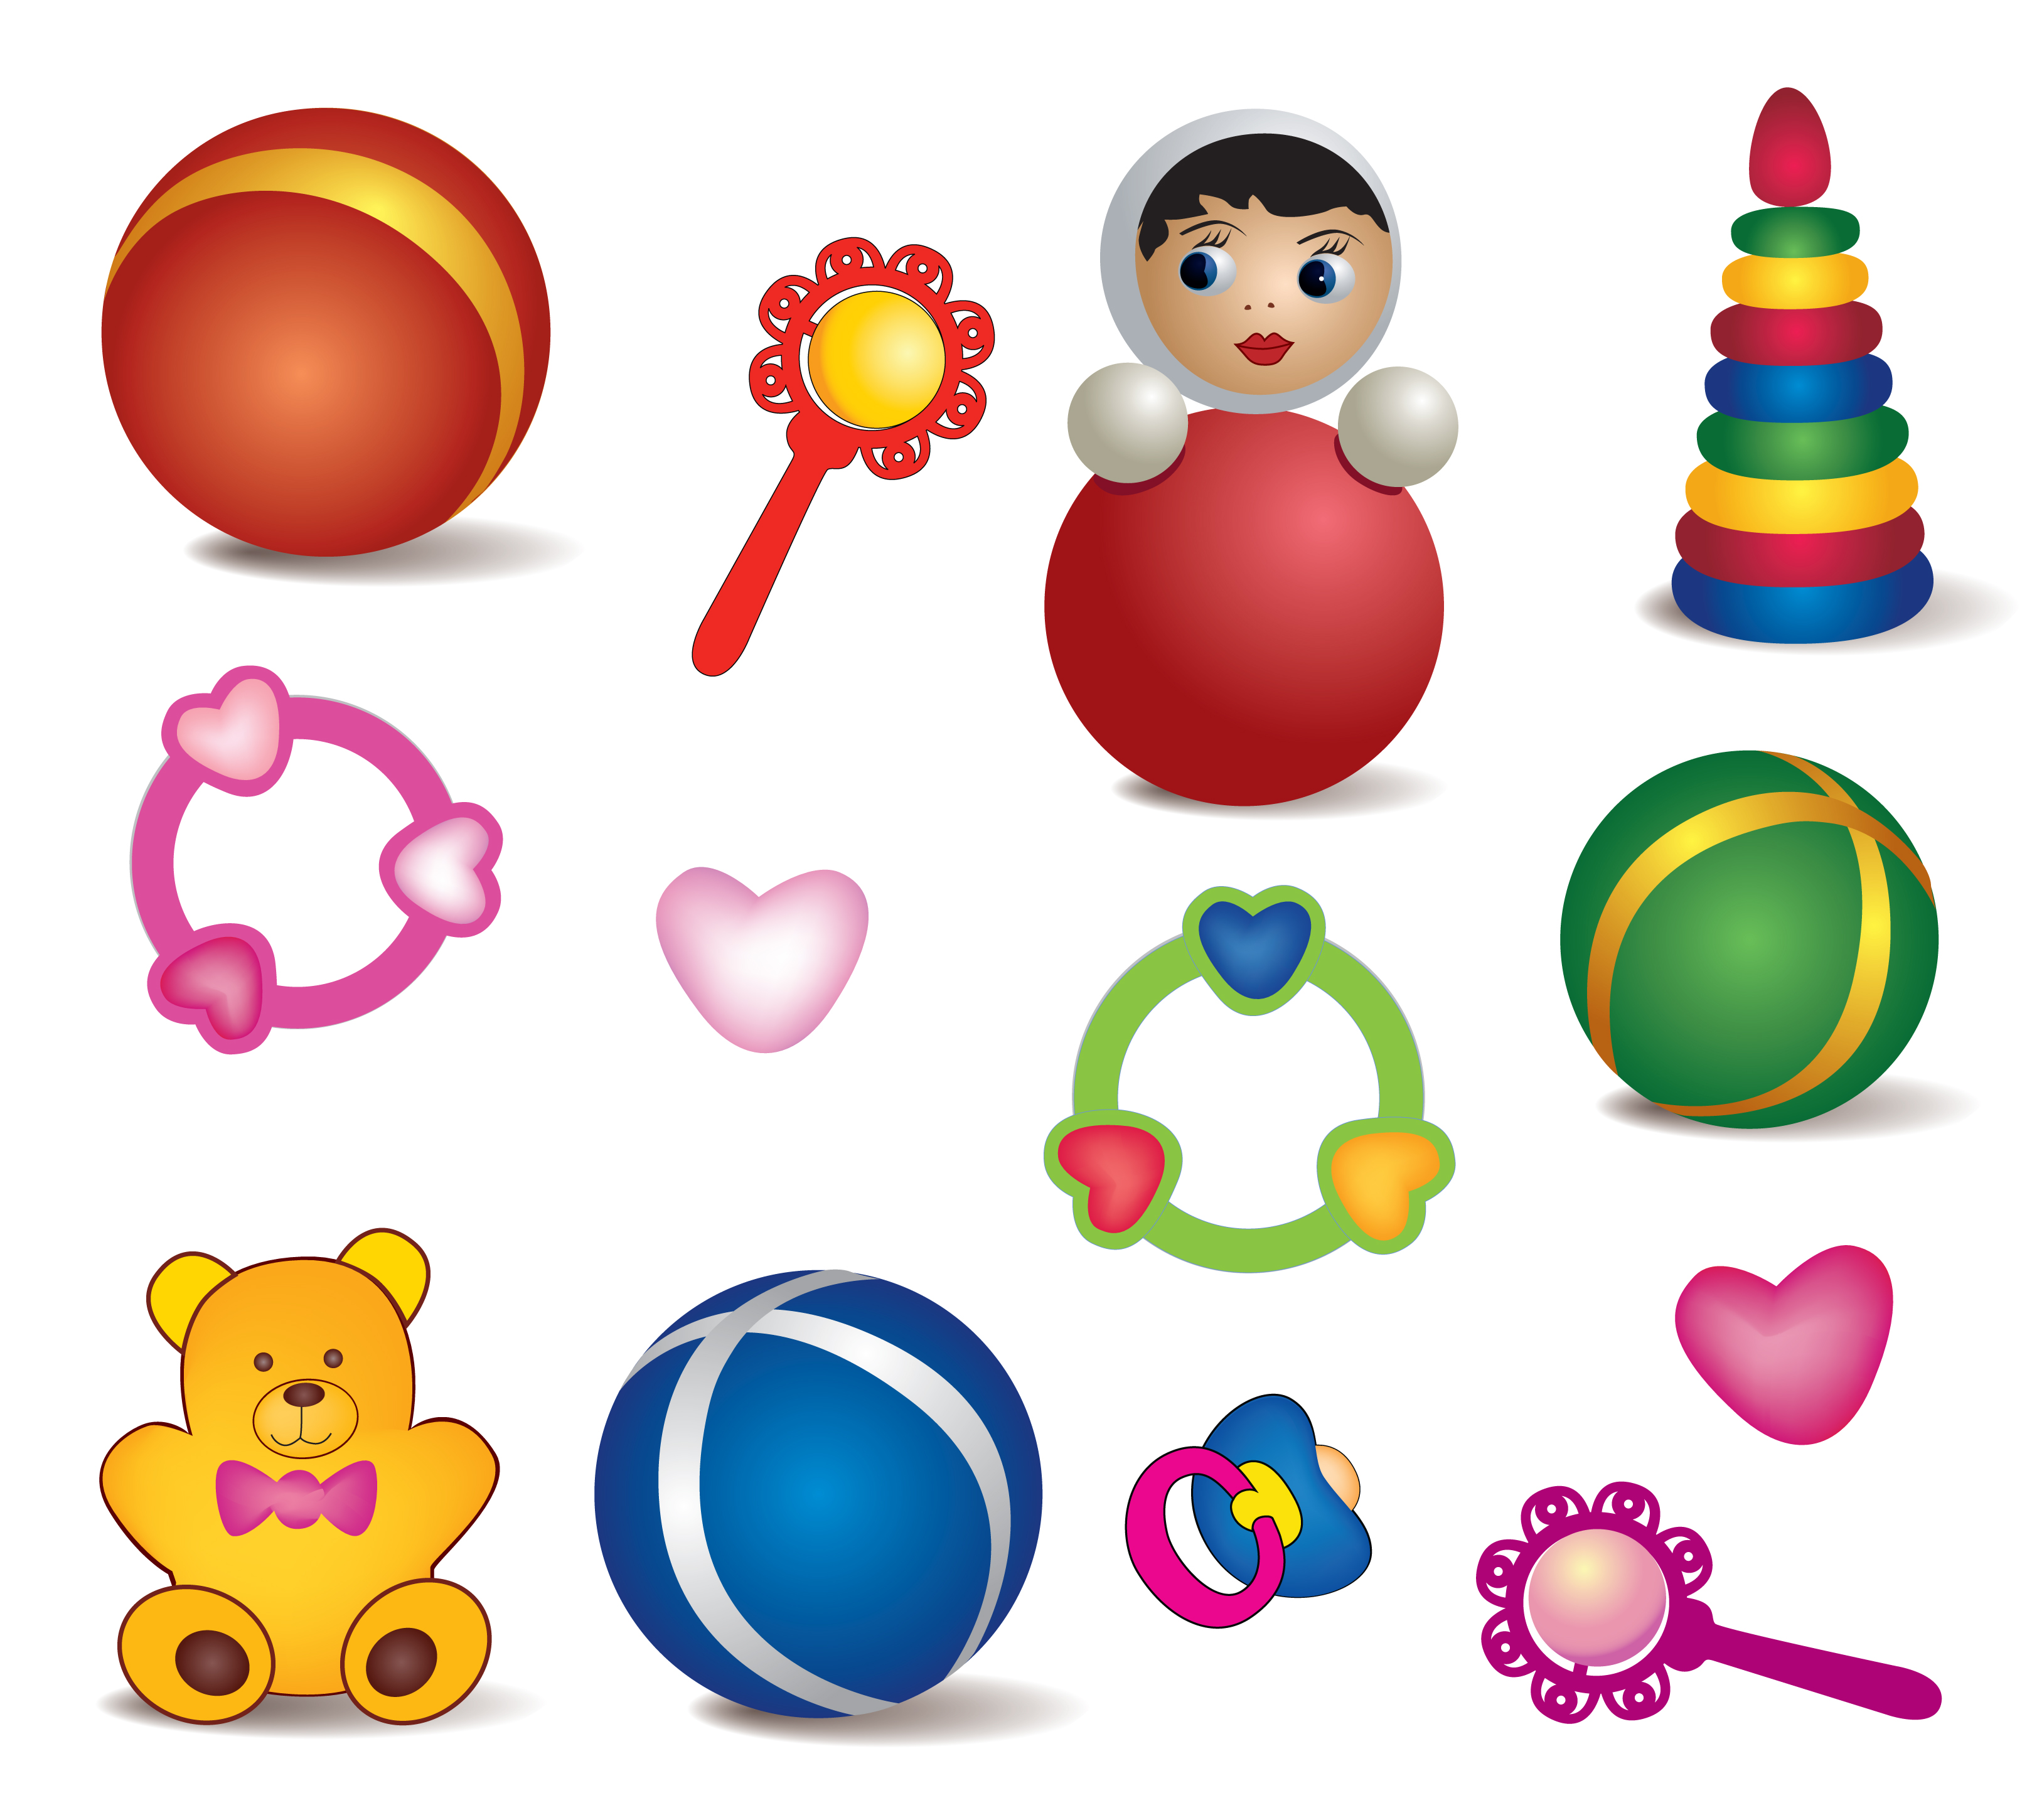 Baby toys isolated. Set of toy icon. Baby care play sign ... (3230 x 2900 Pixel)